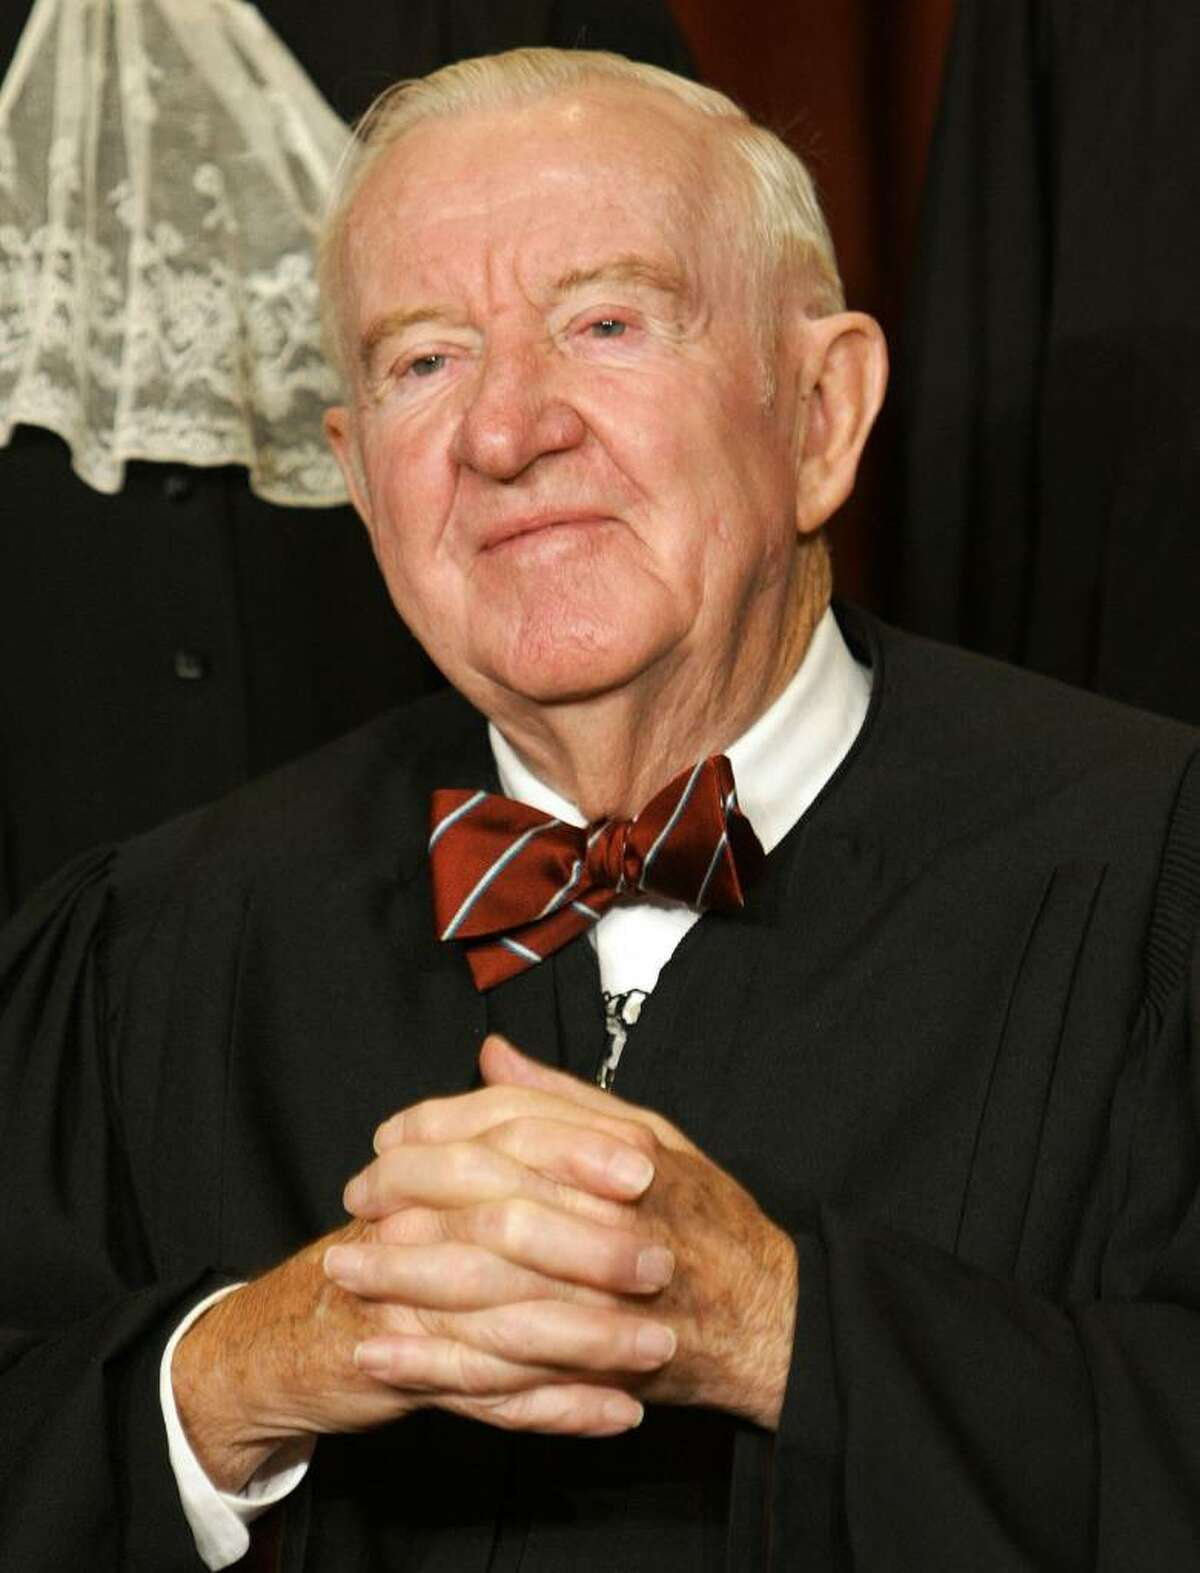 WASHINGTON - DECEMBER 5: US Supreme Court Associate Justice John Paul Stevens poses for a picture at the US Supreme Court December 5, 2003 in Washington, DC. (Photo by Mark Wilson/Getty Images)